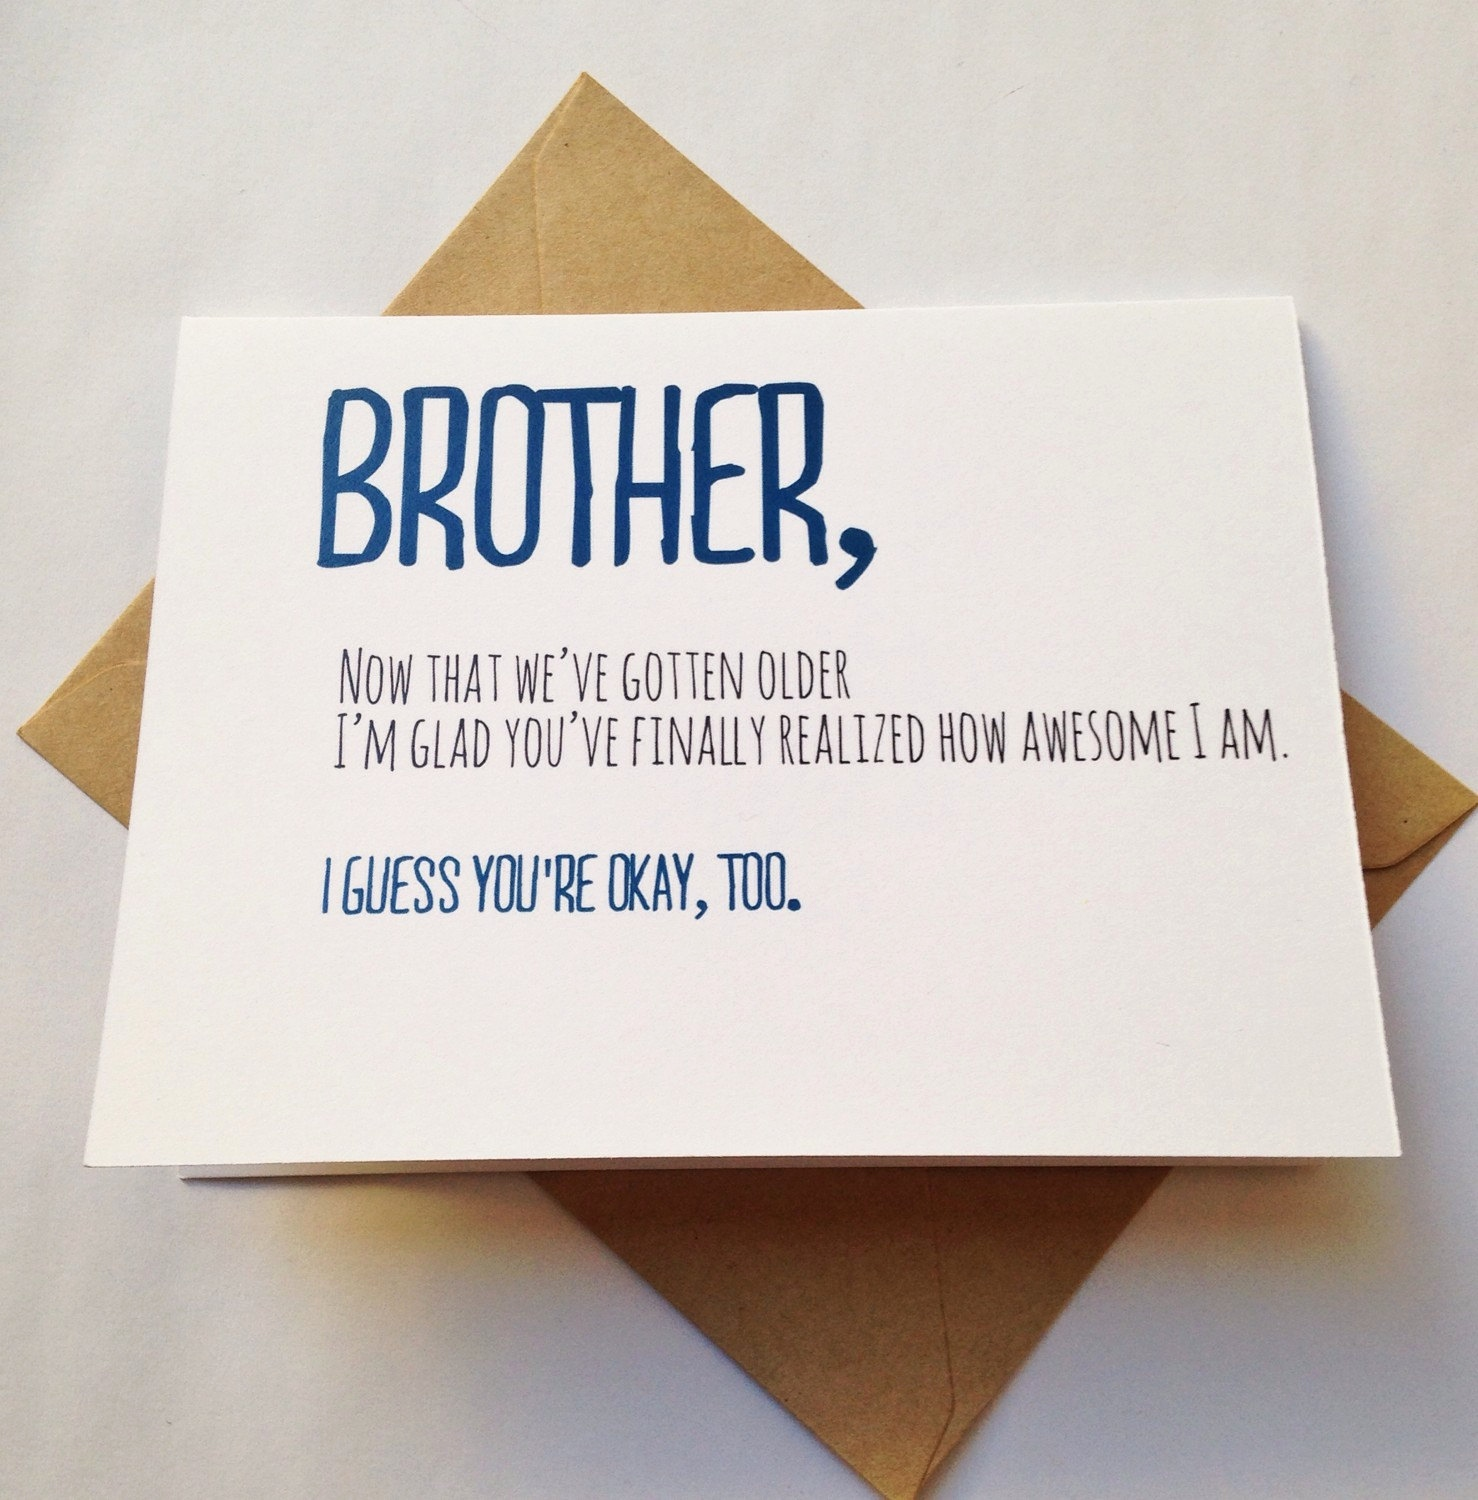 birthday card ideas for brother funny ; birthday-card-for-boss-funny-lovely-brother-card-brother-birthday-card-funny-card-card-for-of-birthday-card-for-boss-funny